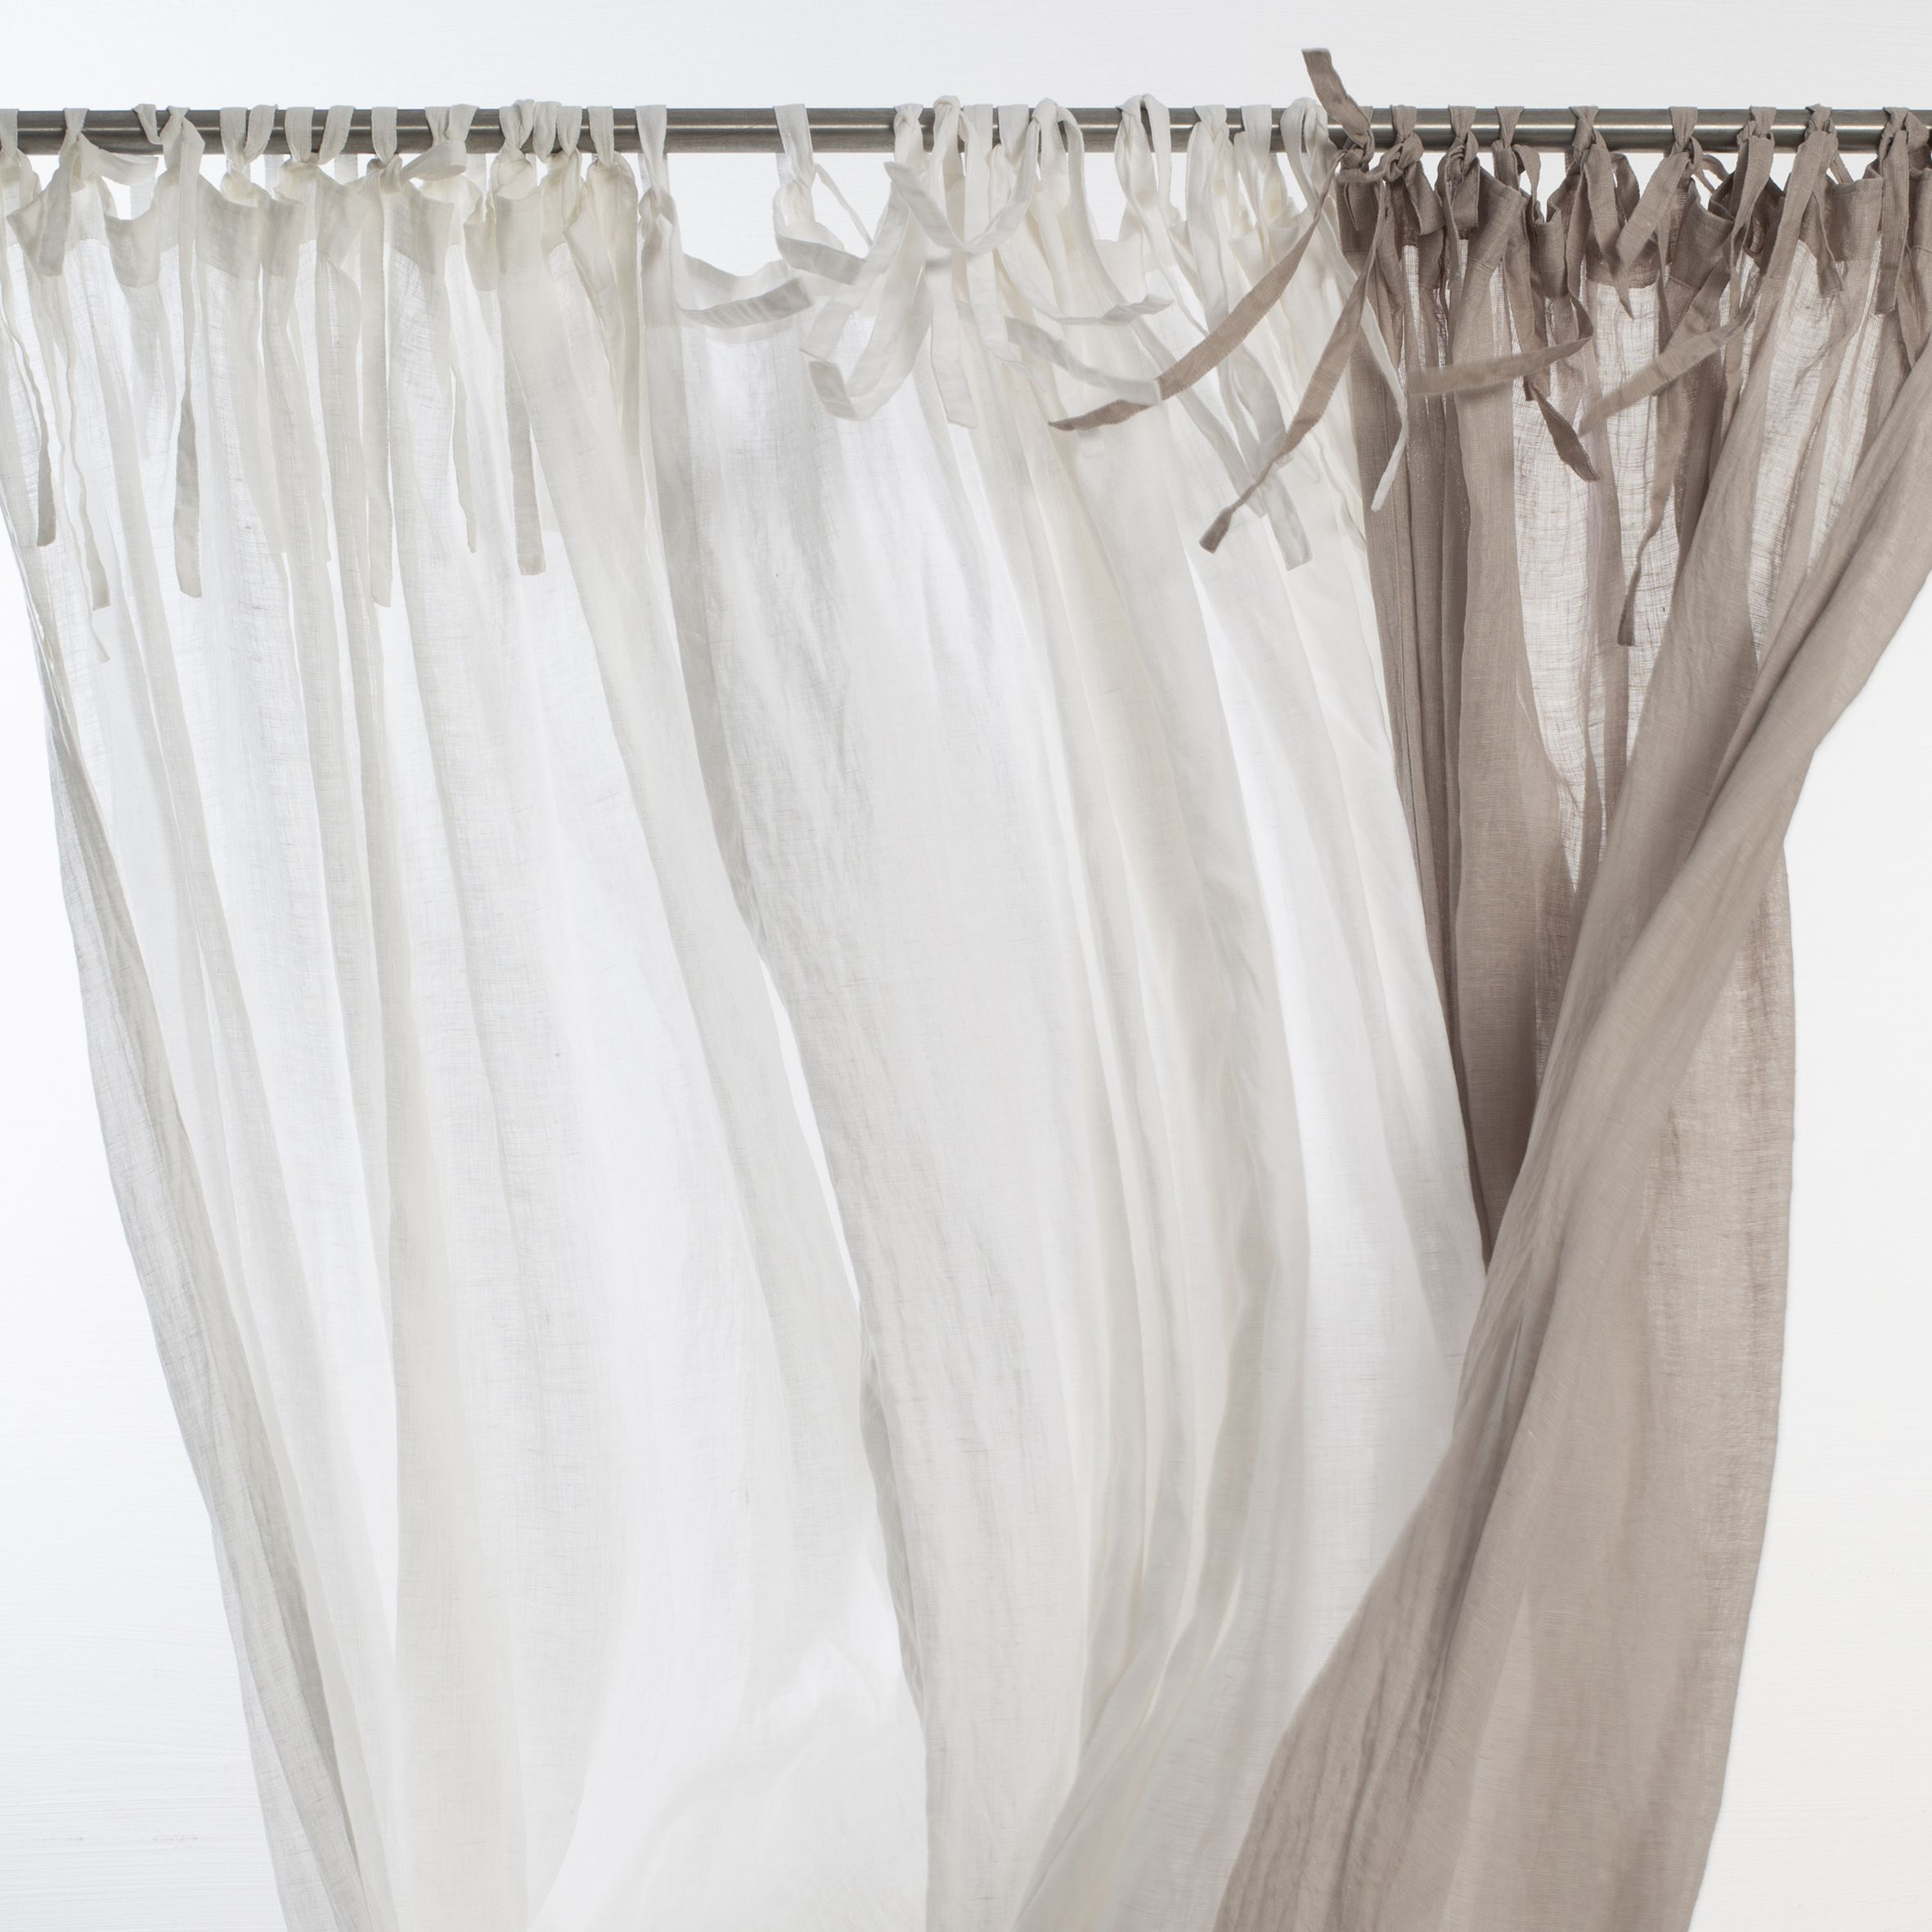 Sheer Linen Curtains Window Curtains With Ties Sheer Drapes Tie